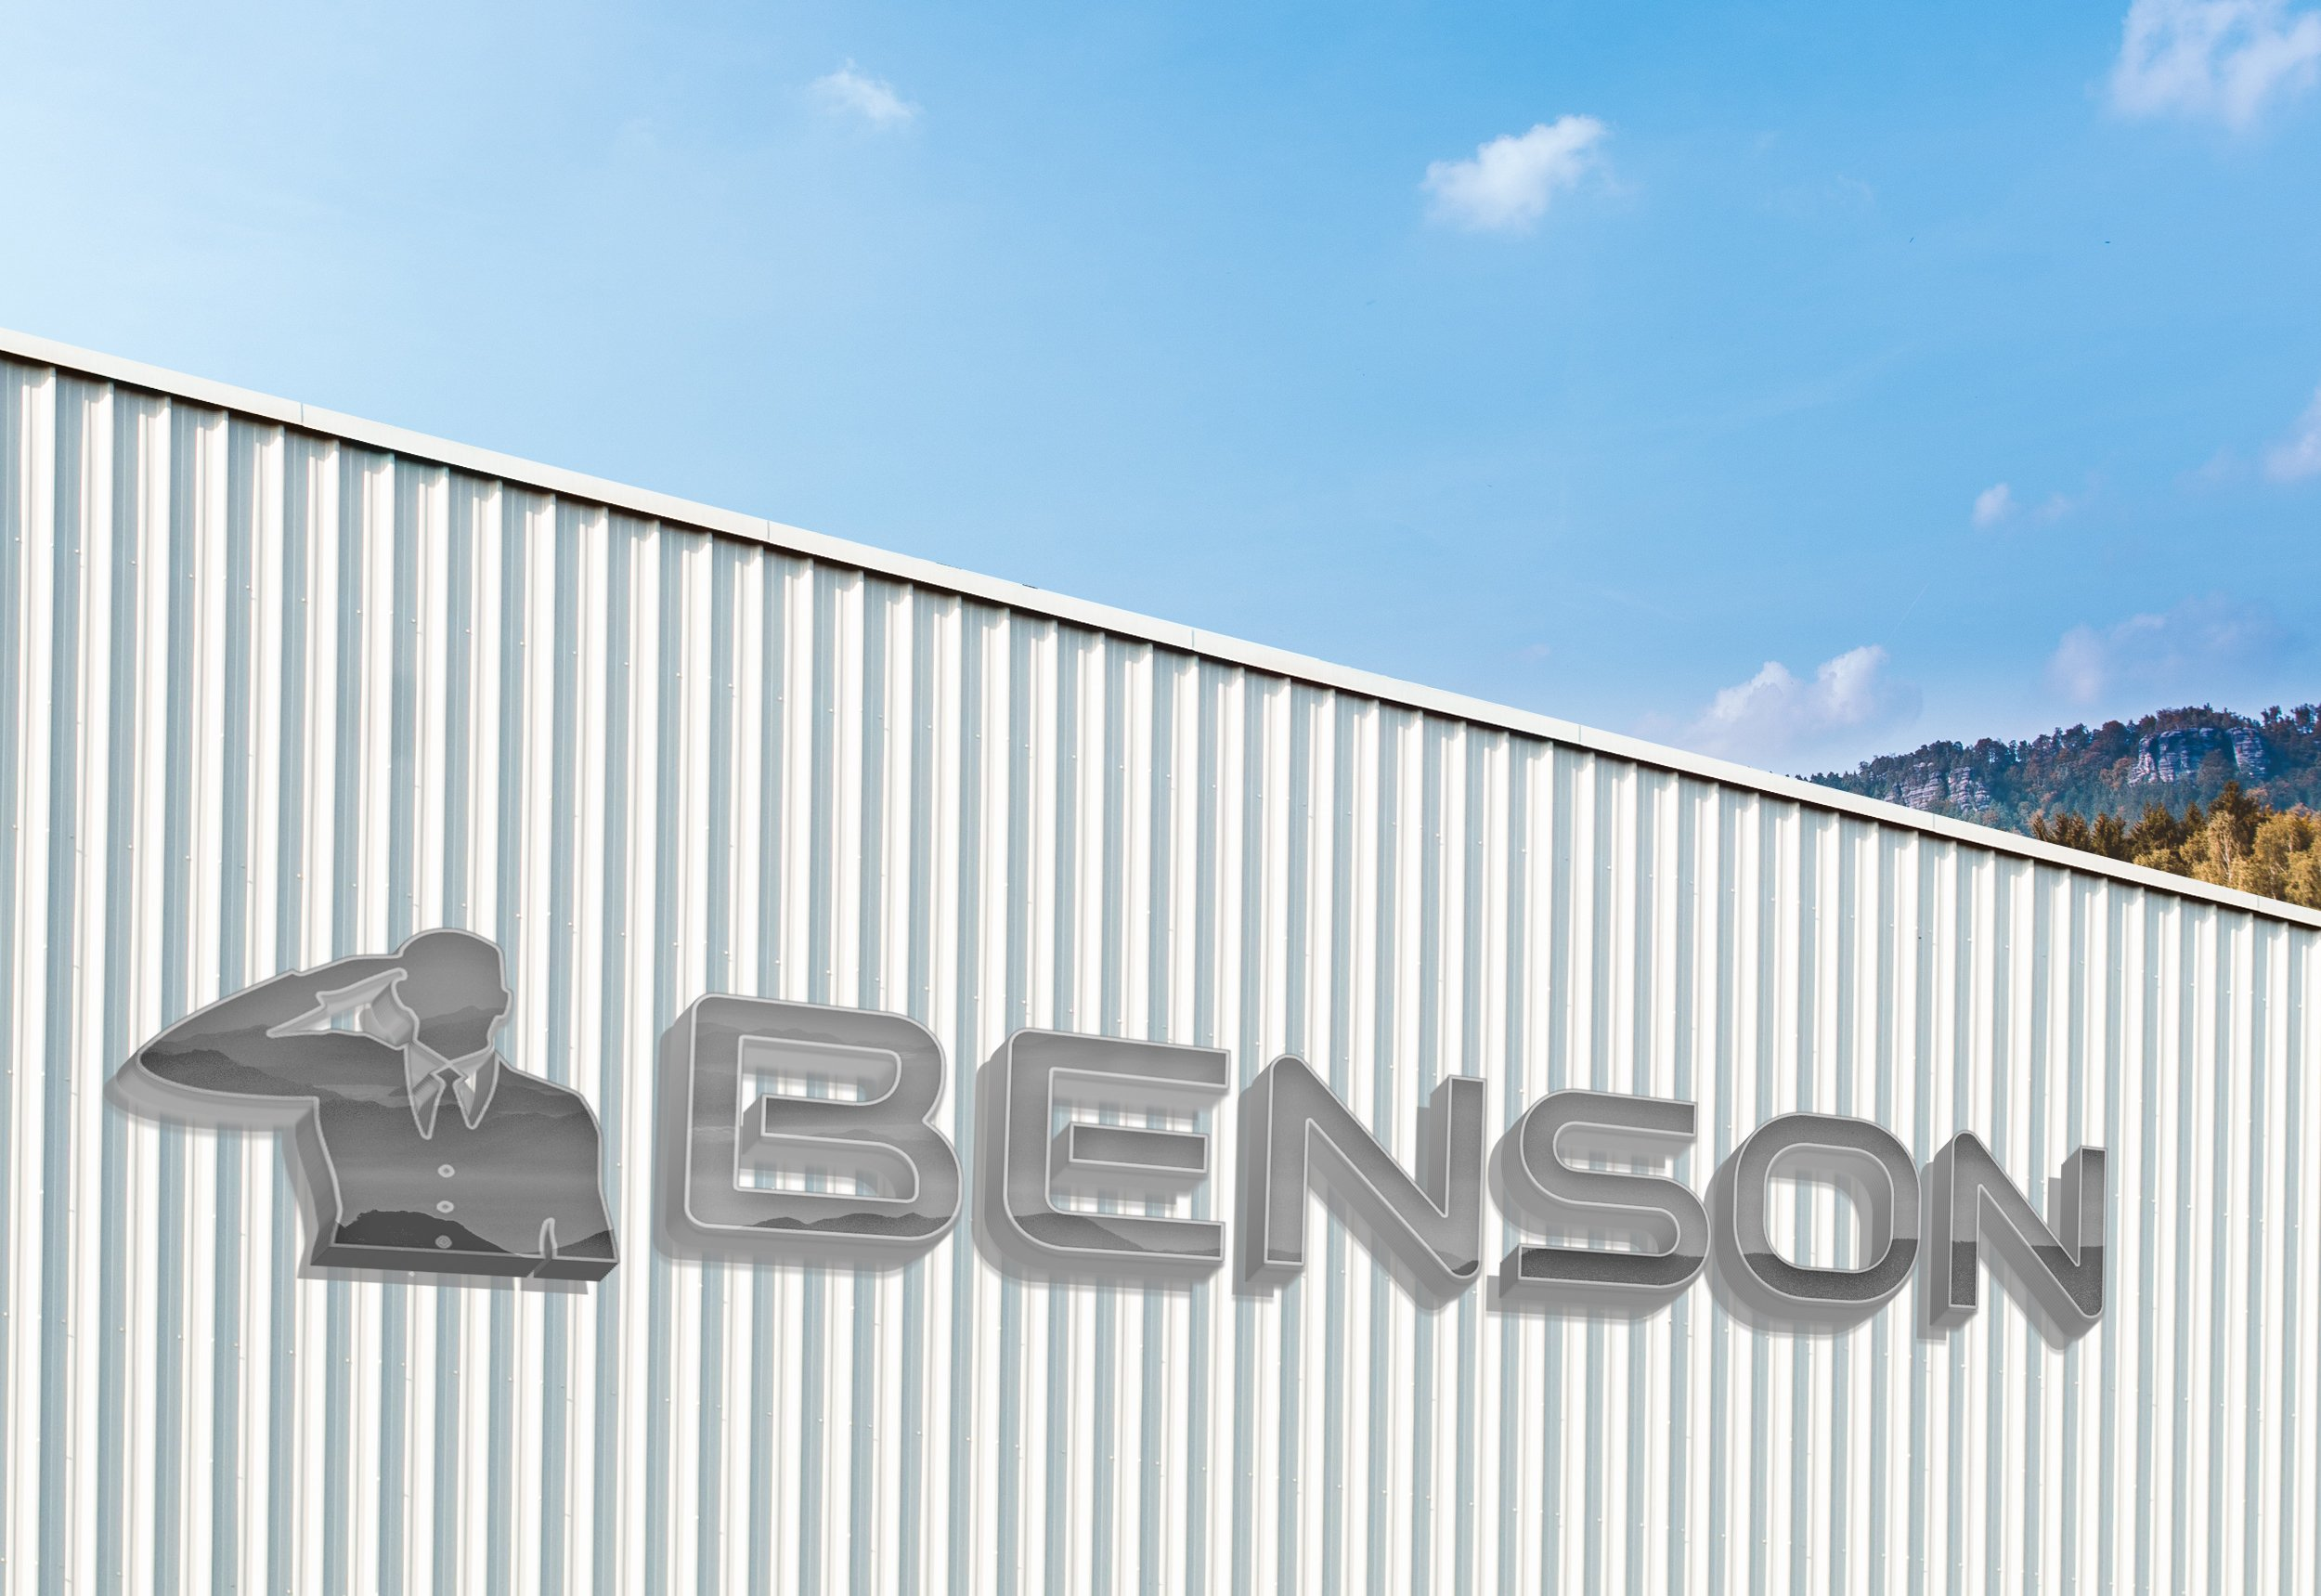 Website-Development-Benson-Logo